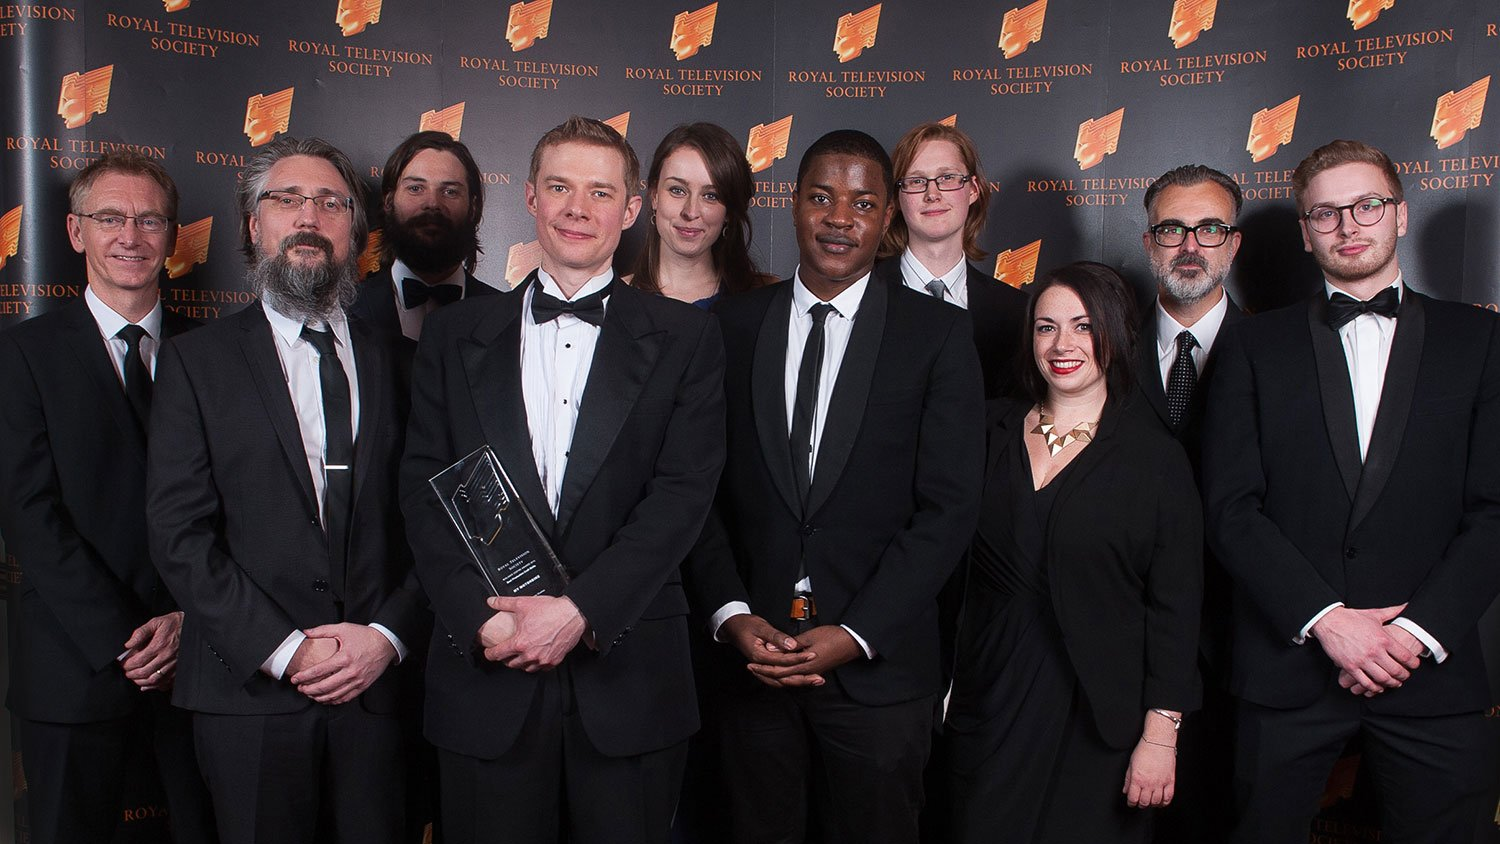 Production Craftsmanship Recognised at RTS Awards